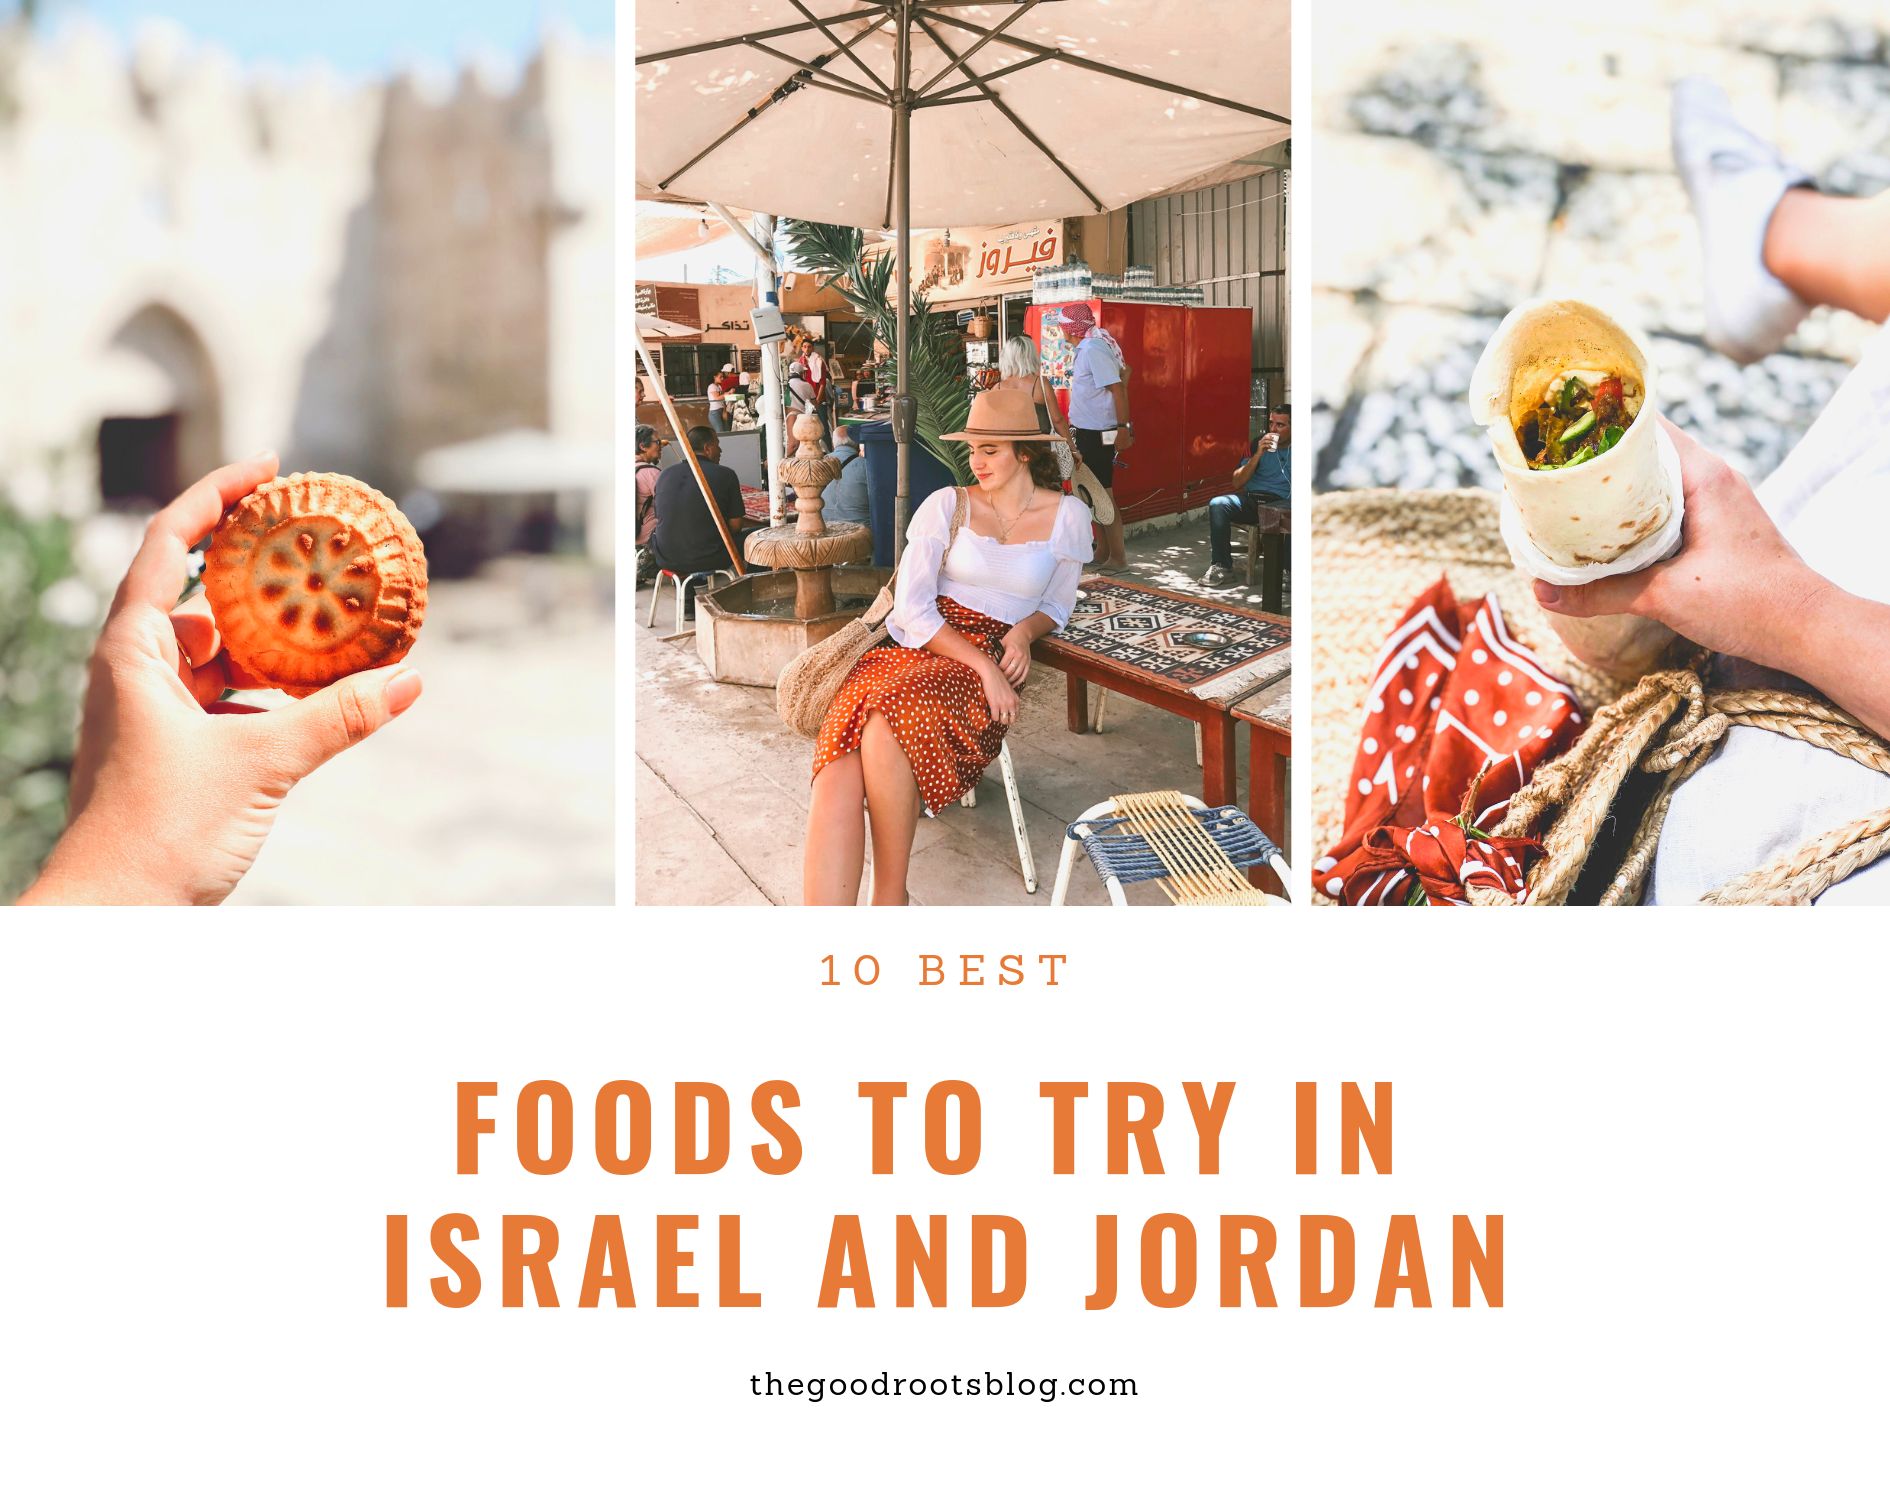 10-best-foods-to-eat-in-israel-and-jordan